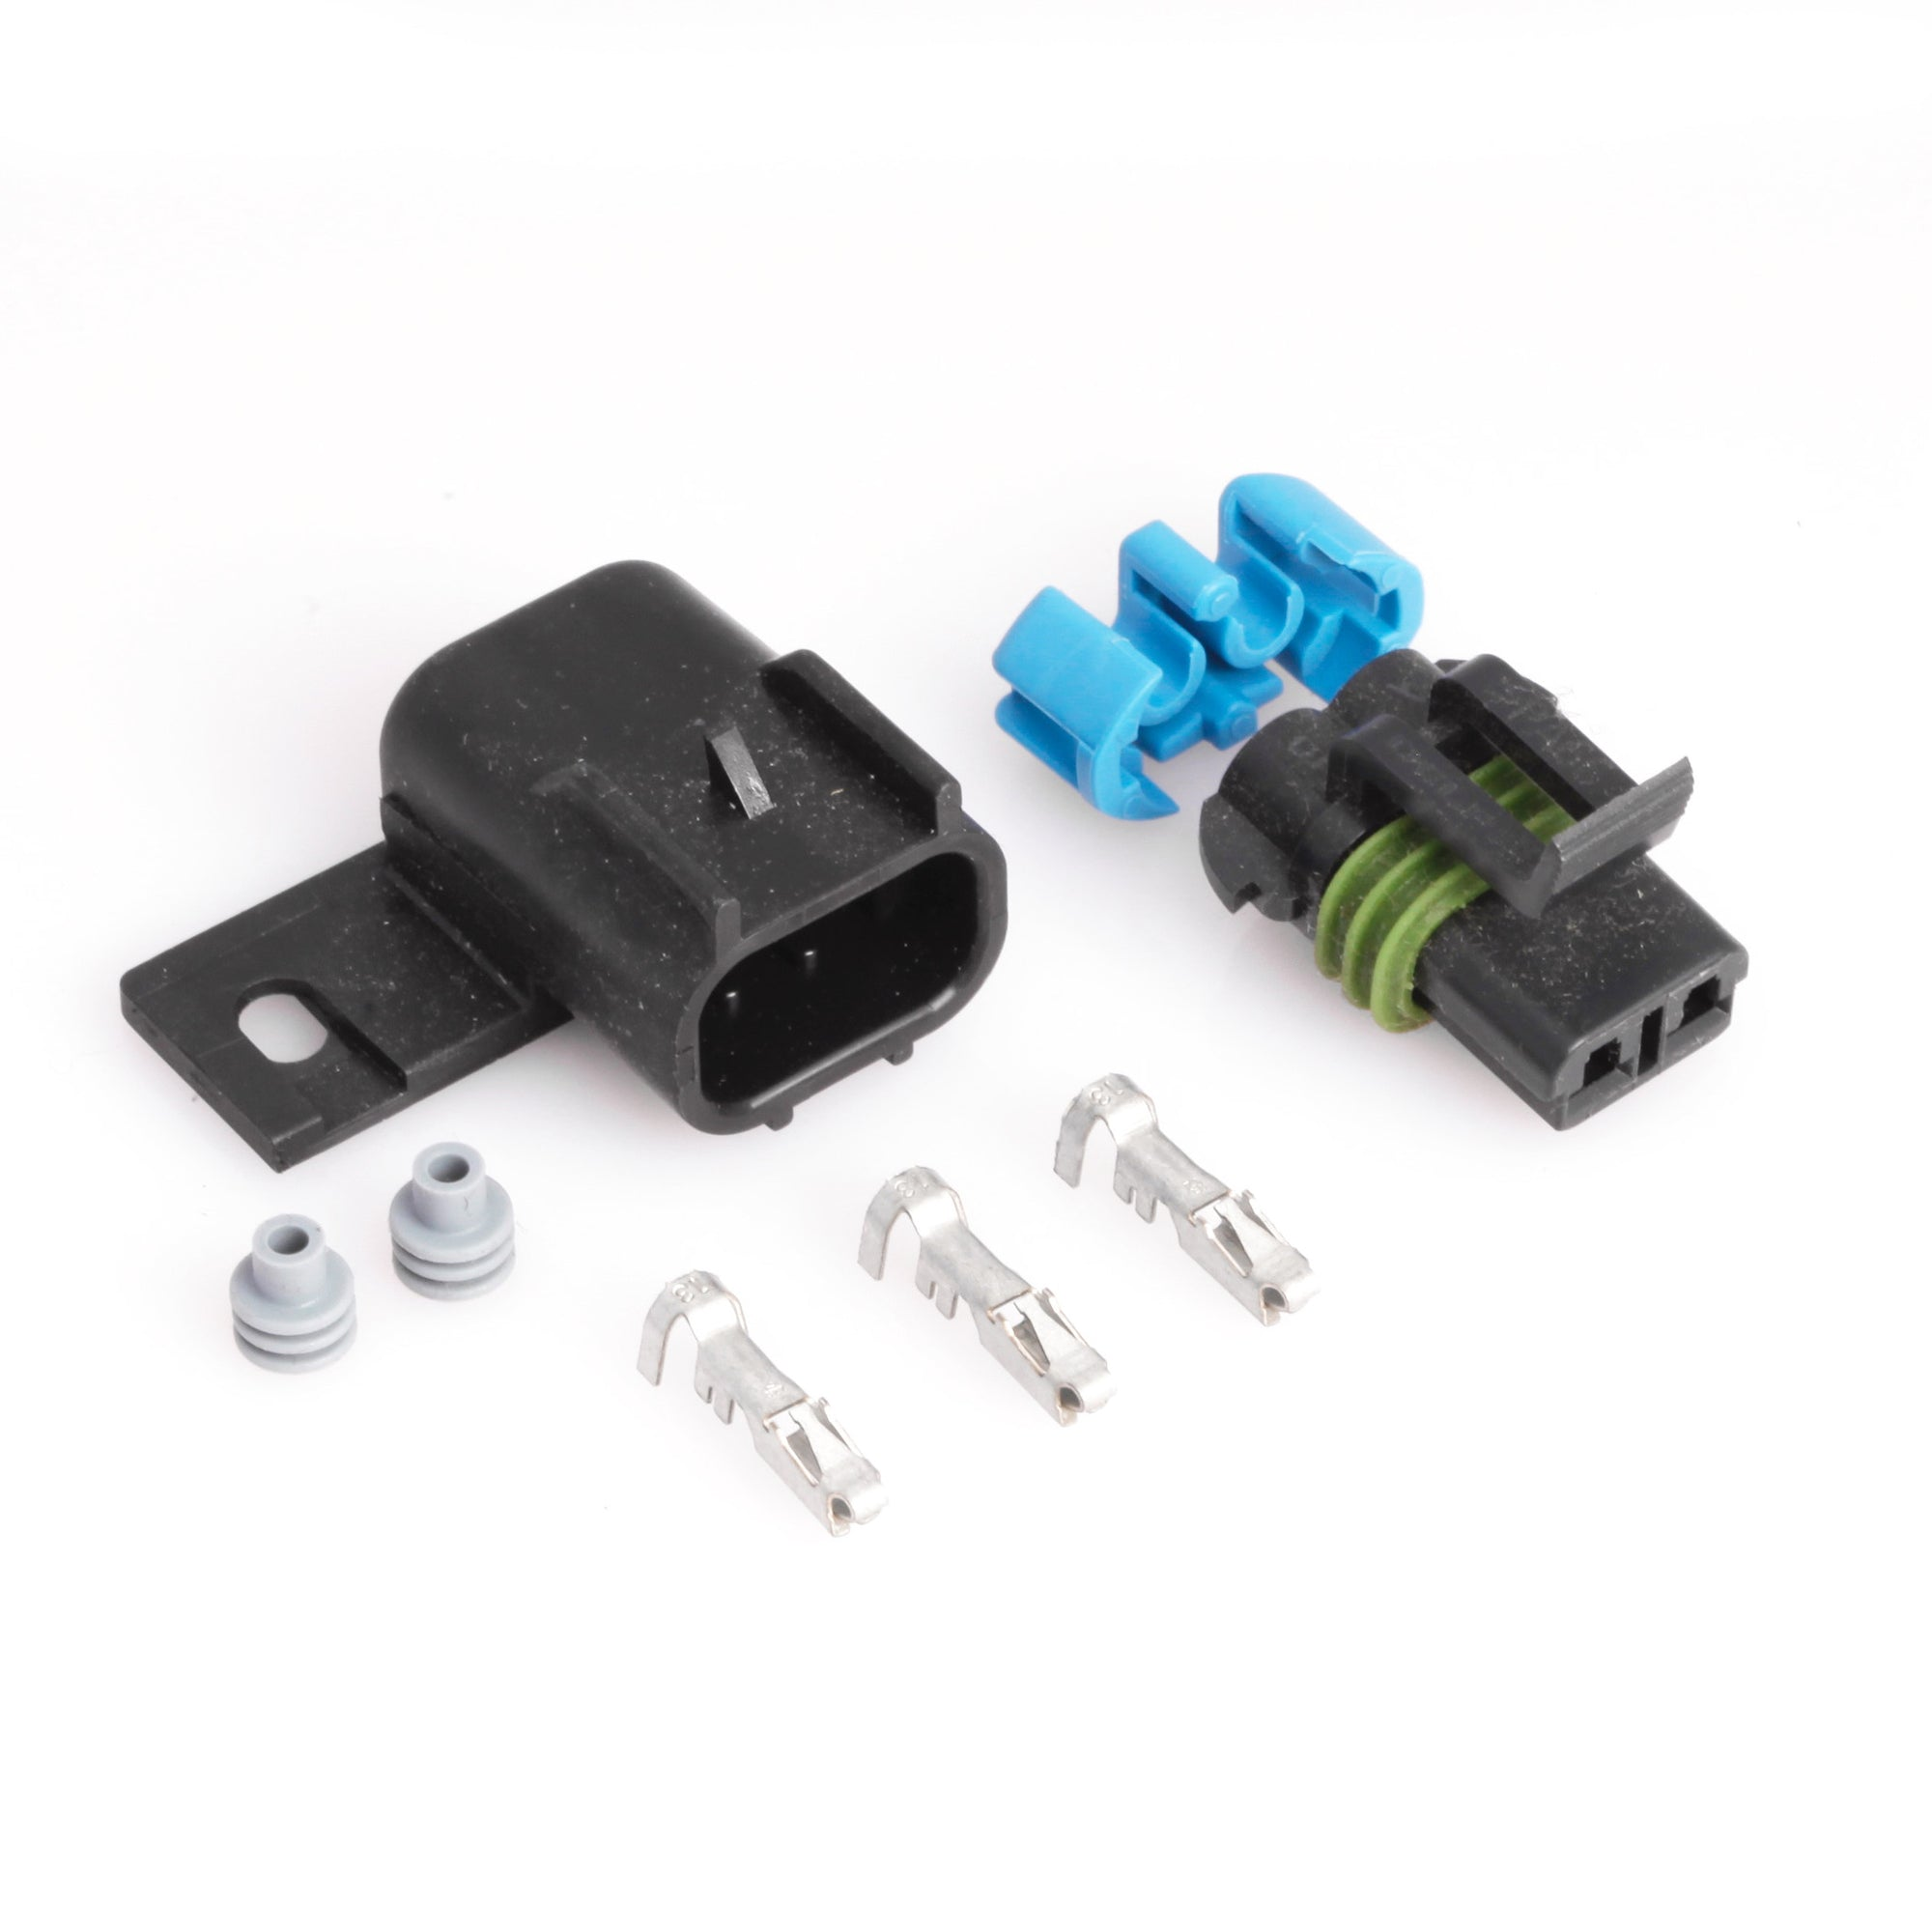 Cable USB for Apple iPhone 5c Lapinette CAC-2P-DATA-5C 2.1A + 1a Fast Car Charger 2 USB Ports